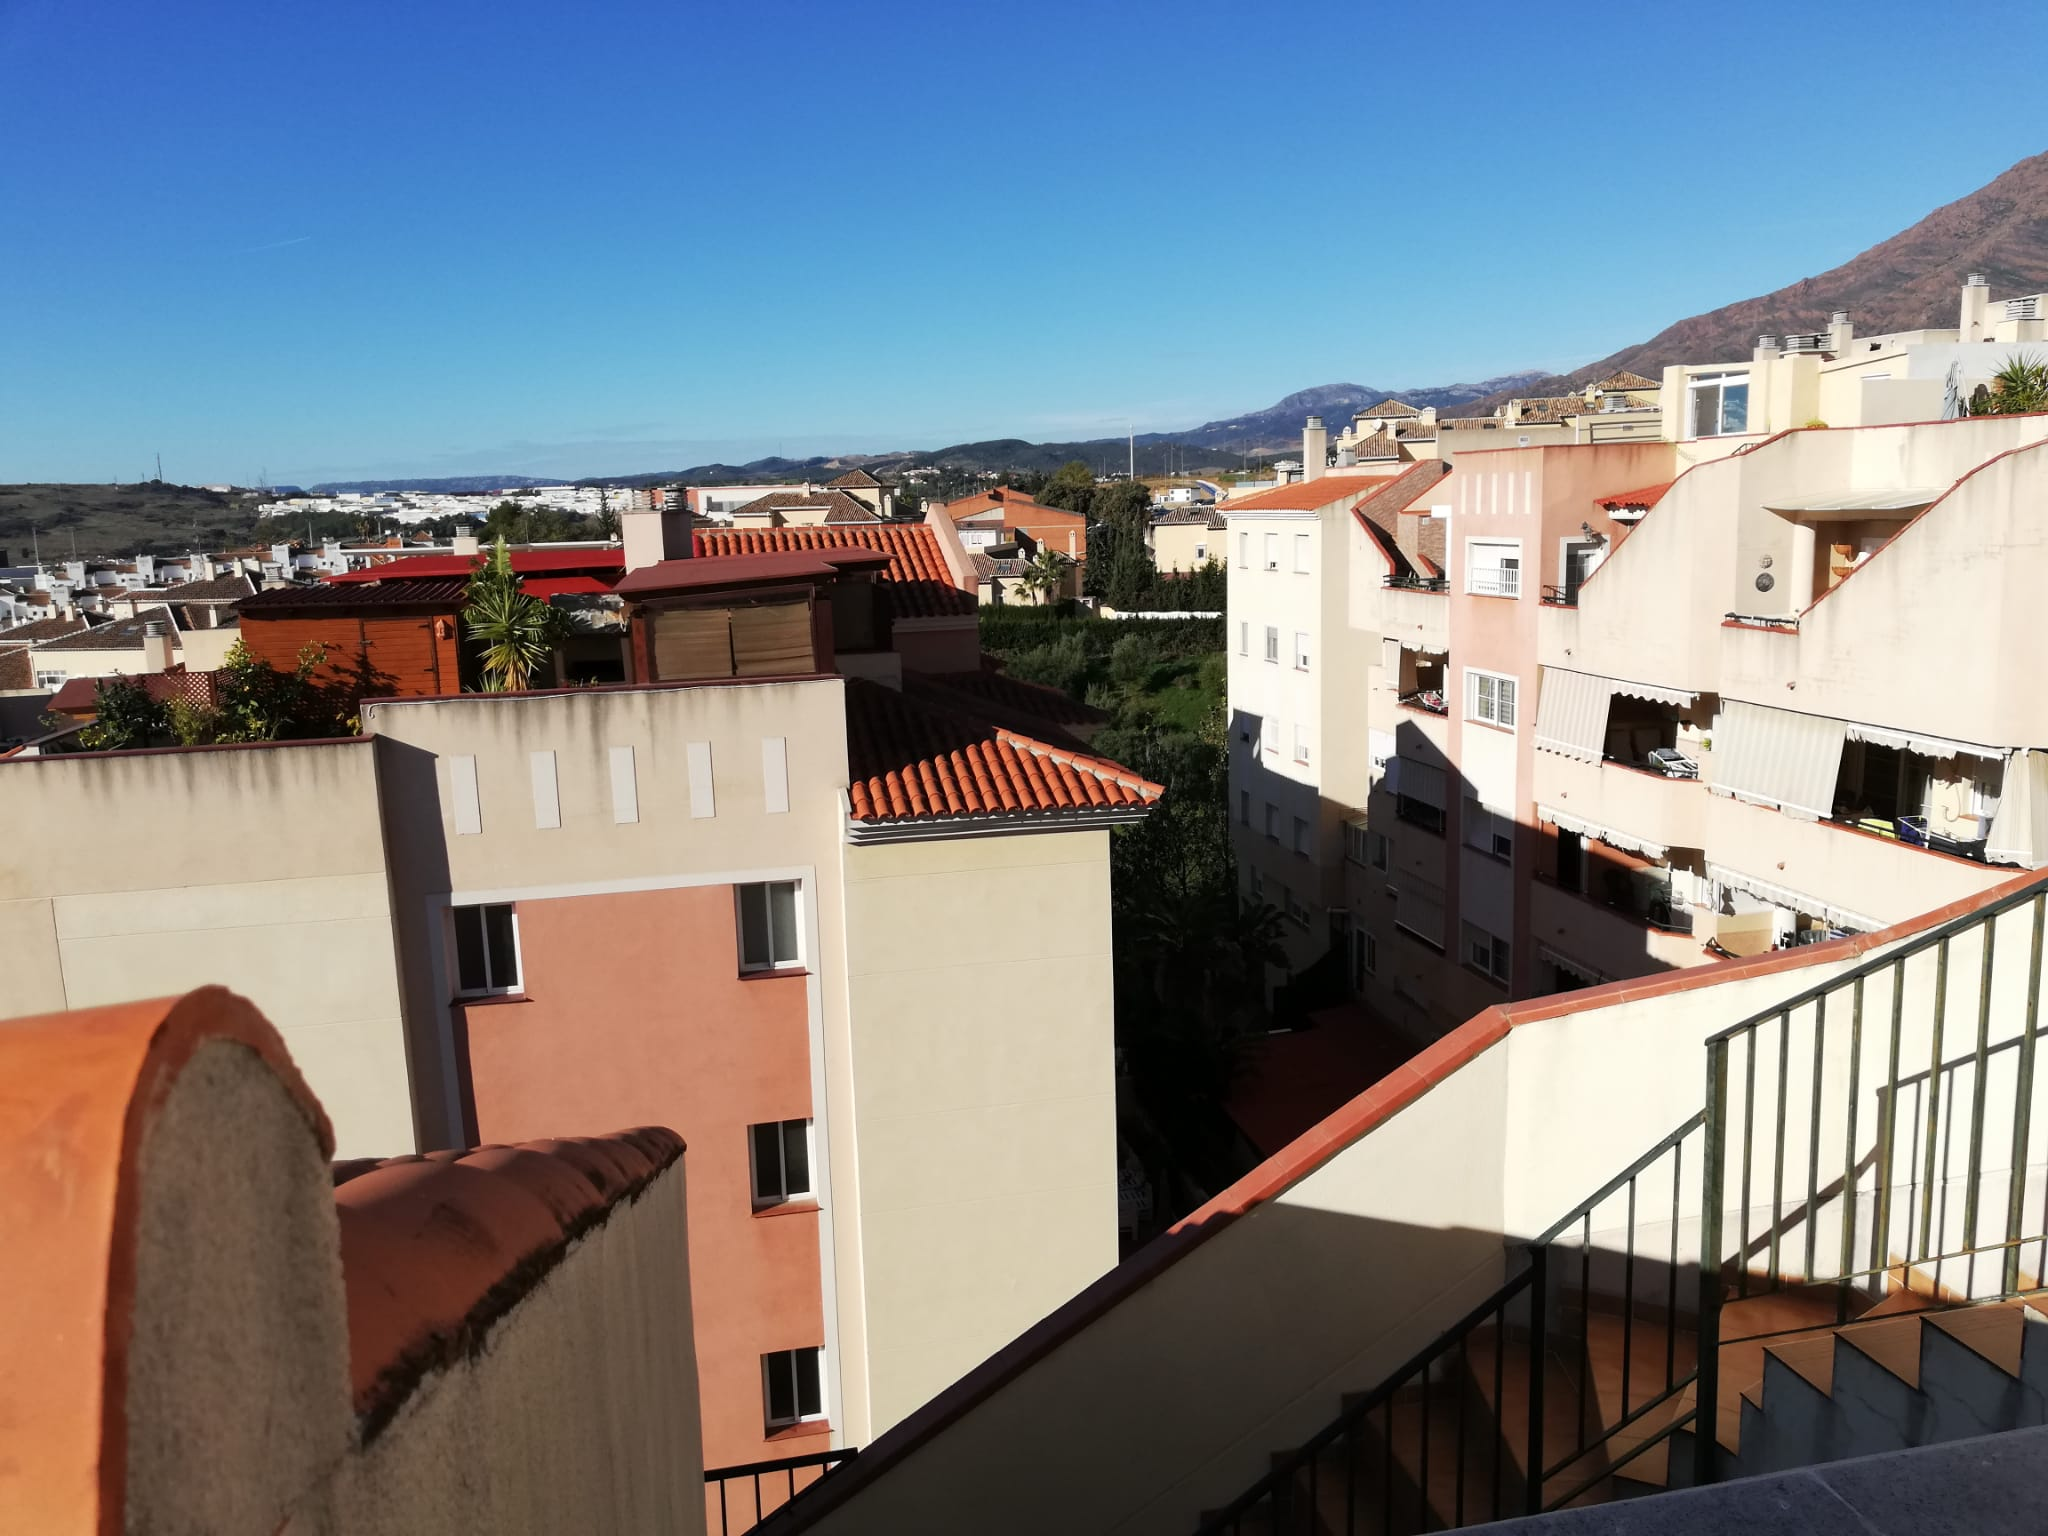 3 bedroom penthouse with sea views in the center of Estepona - mibgroup.es